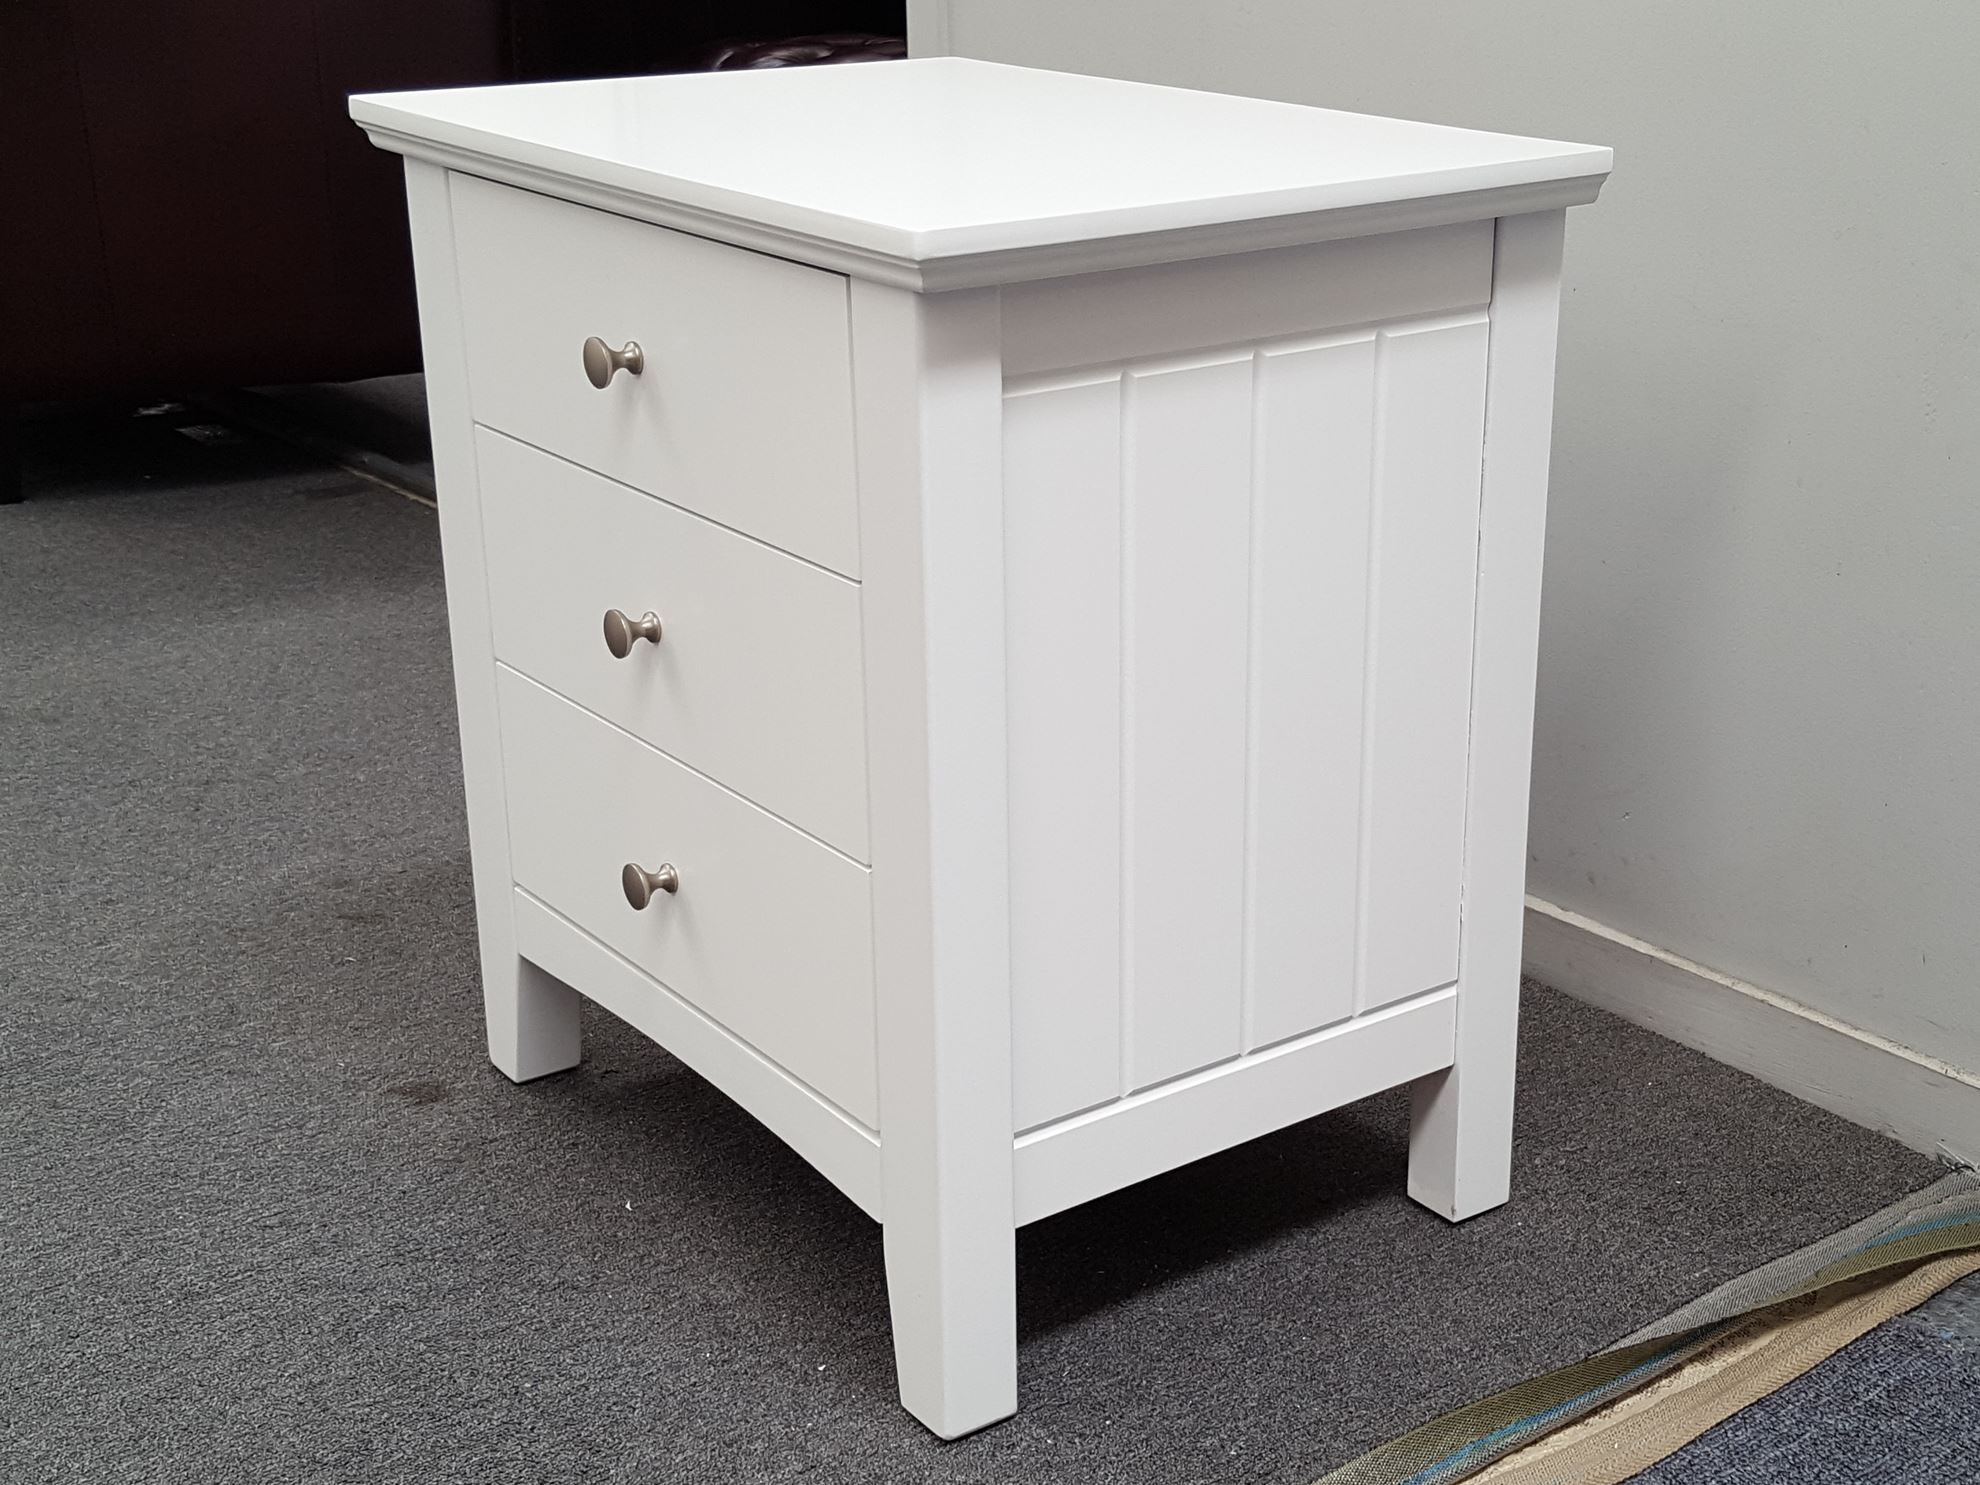 target white top side silver manning brigitte table antique dalton black gloss threshold drawer small adeptus bedside glass hafley beem chest pine eton console end storage